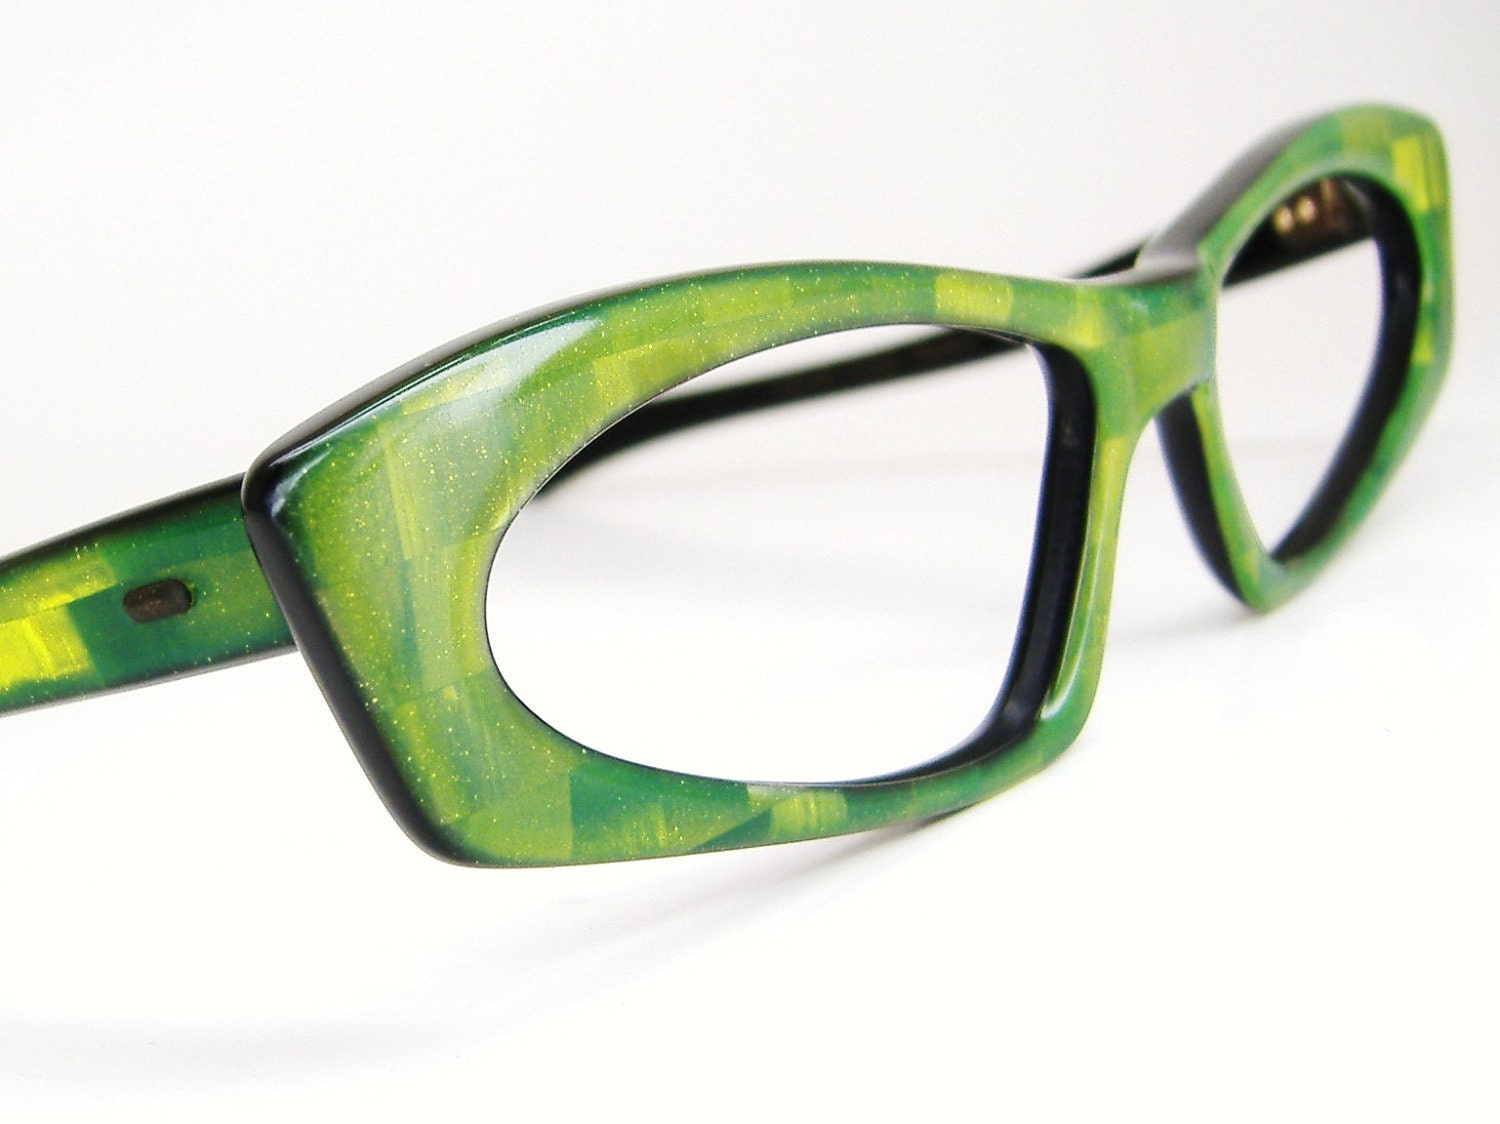 Vintage Green 1960s Cat eye Eyeglasses Sunglasses Eyewear